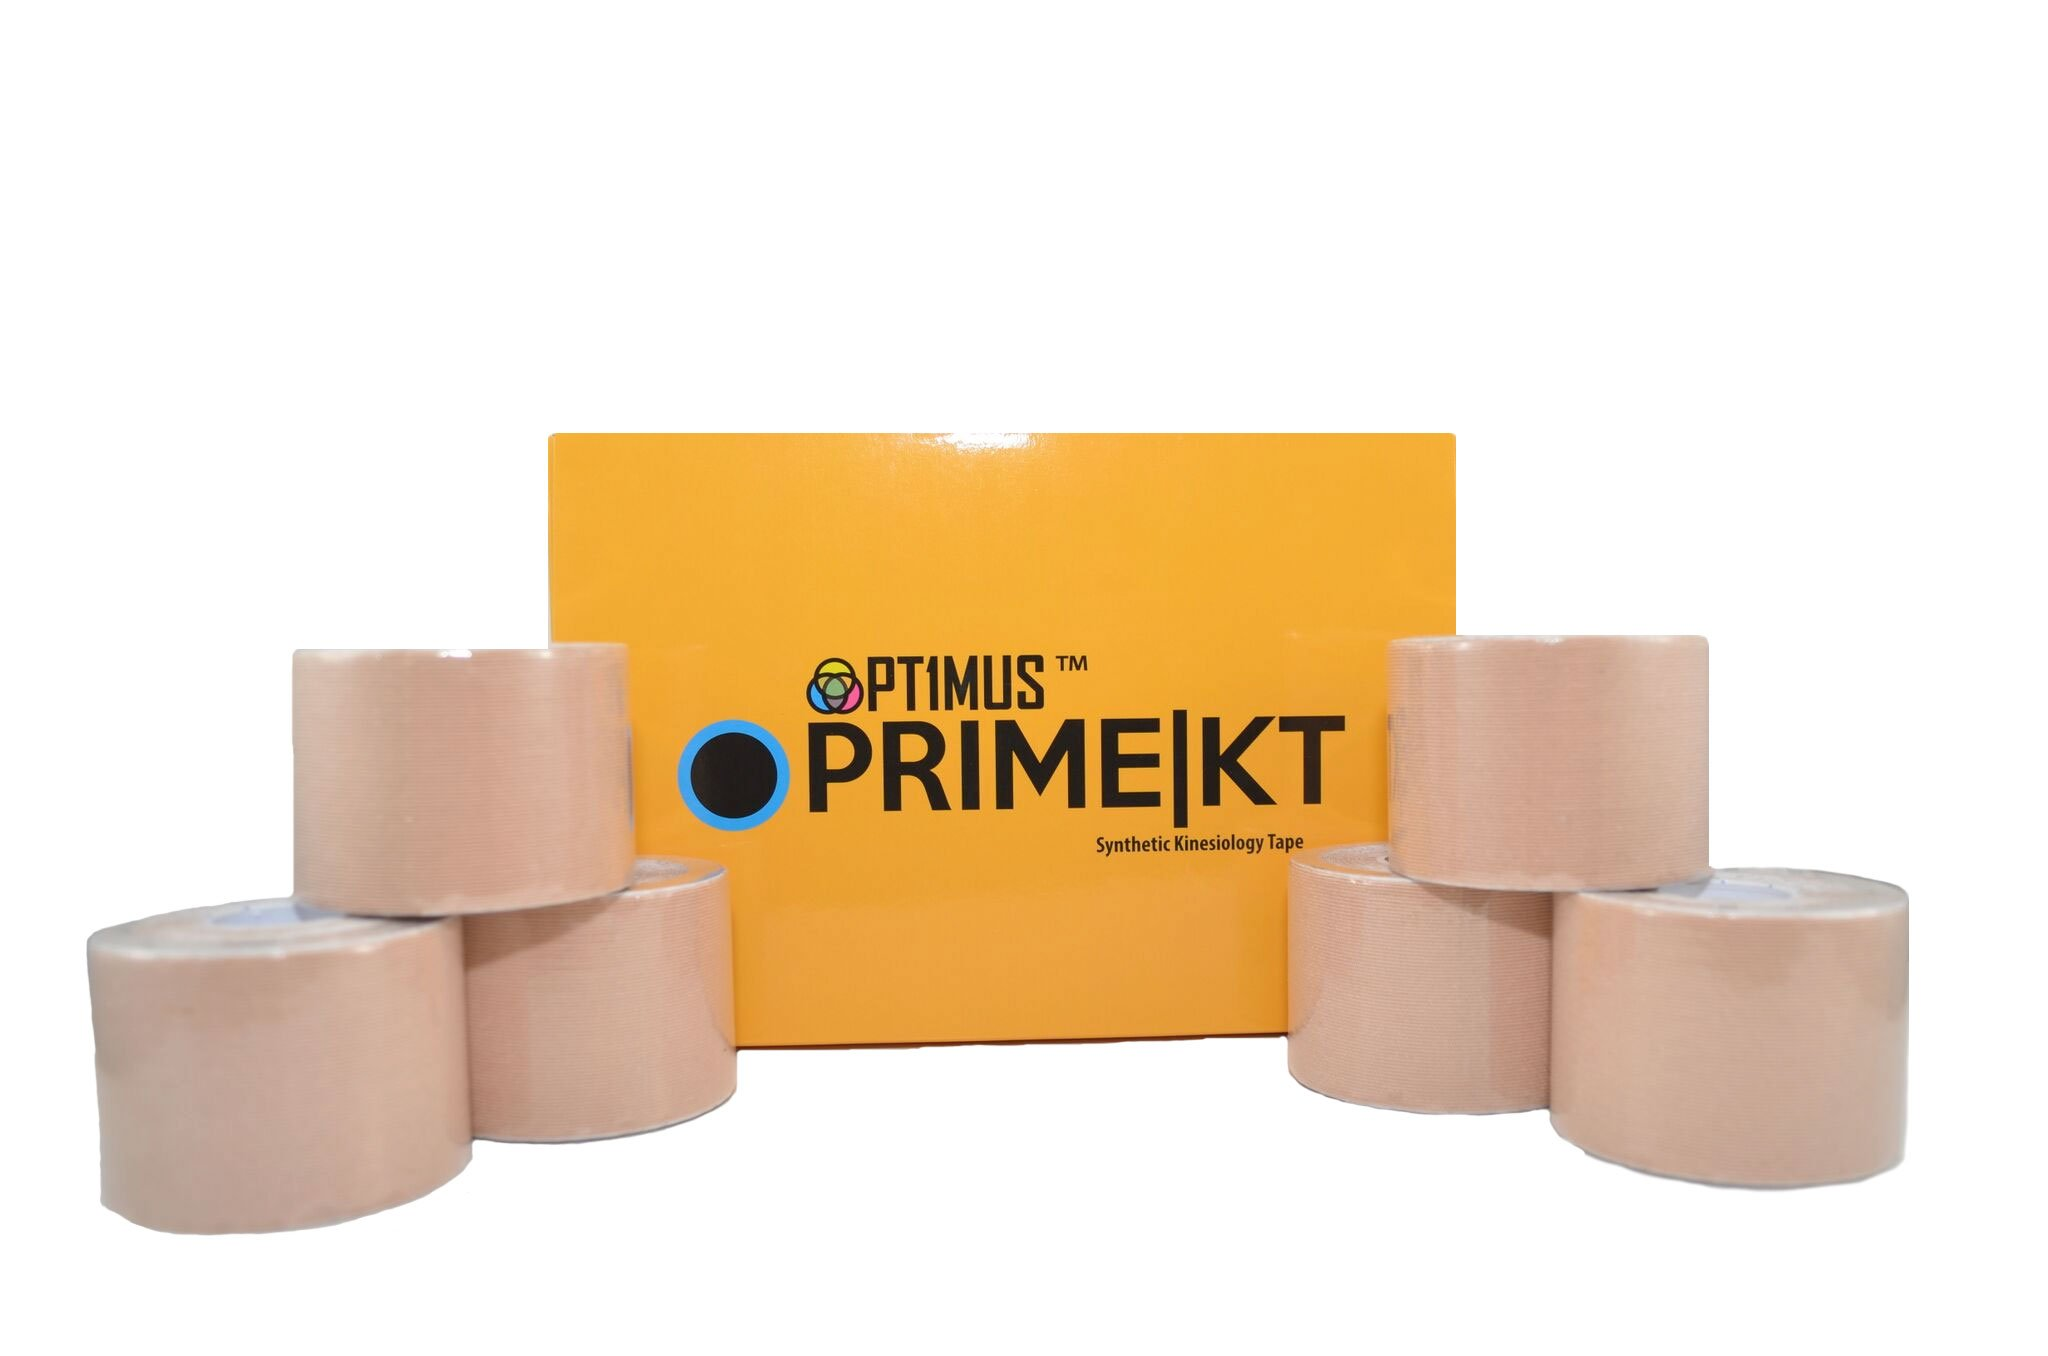 Prime KT Synthetic Kinesiology Tape, 6-Pack of 2 Wide x 16.4' Long Uncut Synthetic Kinesio Therapeutic Tape. Beige/Tan. Multipack KT Tape for Taping Knee, Shoulder, Elbow, Back, Ankle, and More.